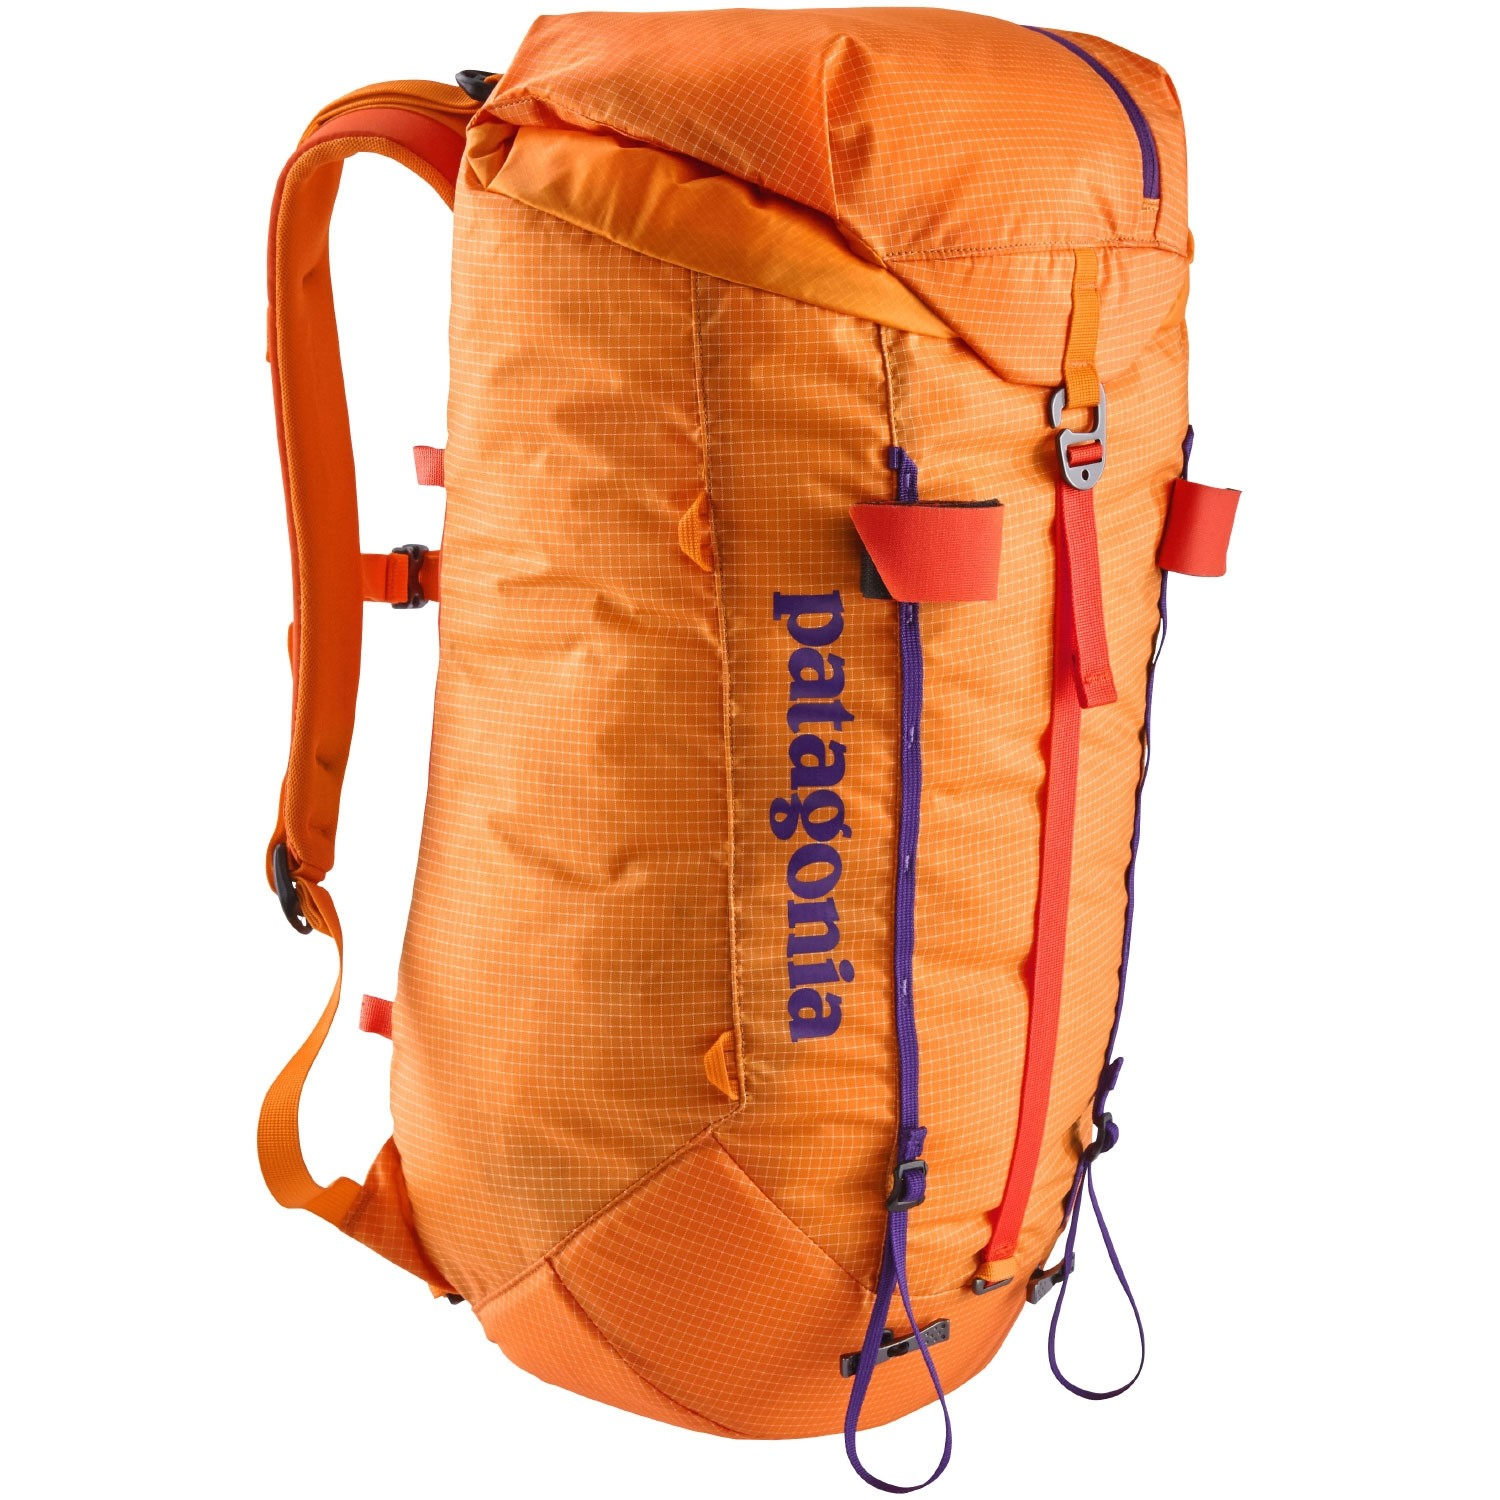 Patagonia-Ascensionist-30L-Sporty-Orange-011A1S-AW17.jpg